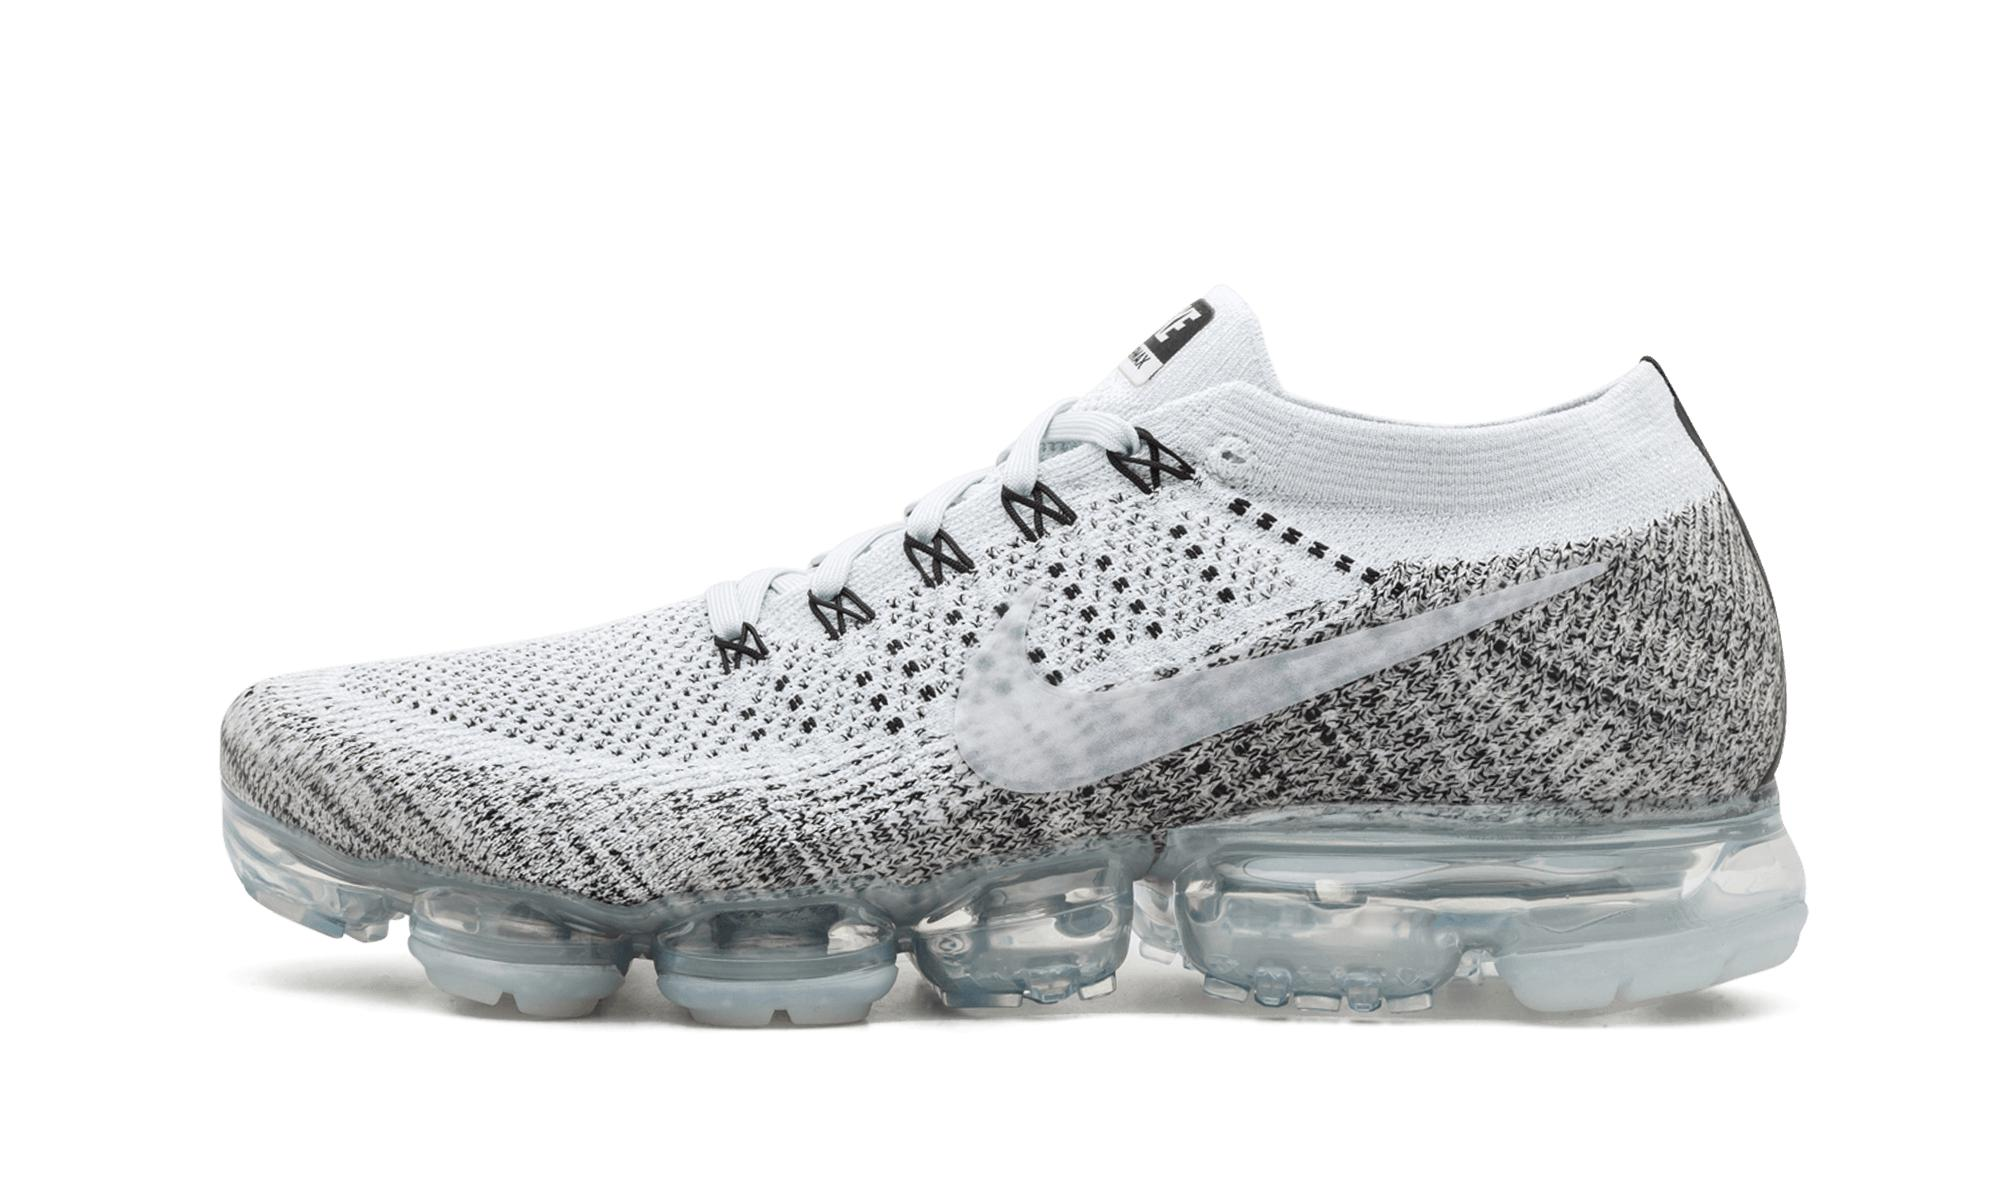 6cd1207f93c27a Lyst - Nike Vapormax Flyknit in Gray for Men - Save 19%